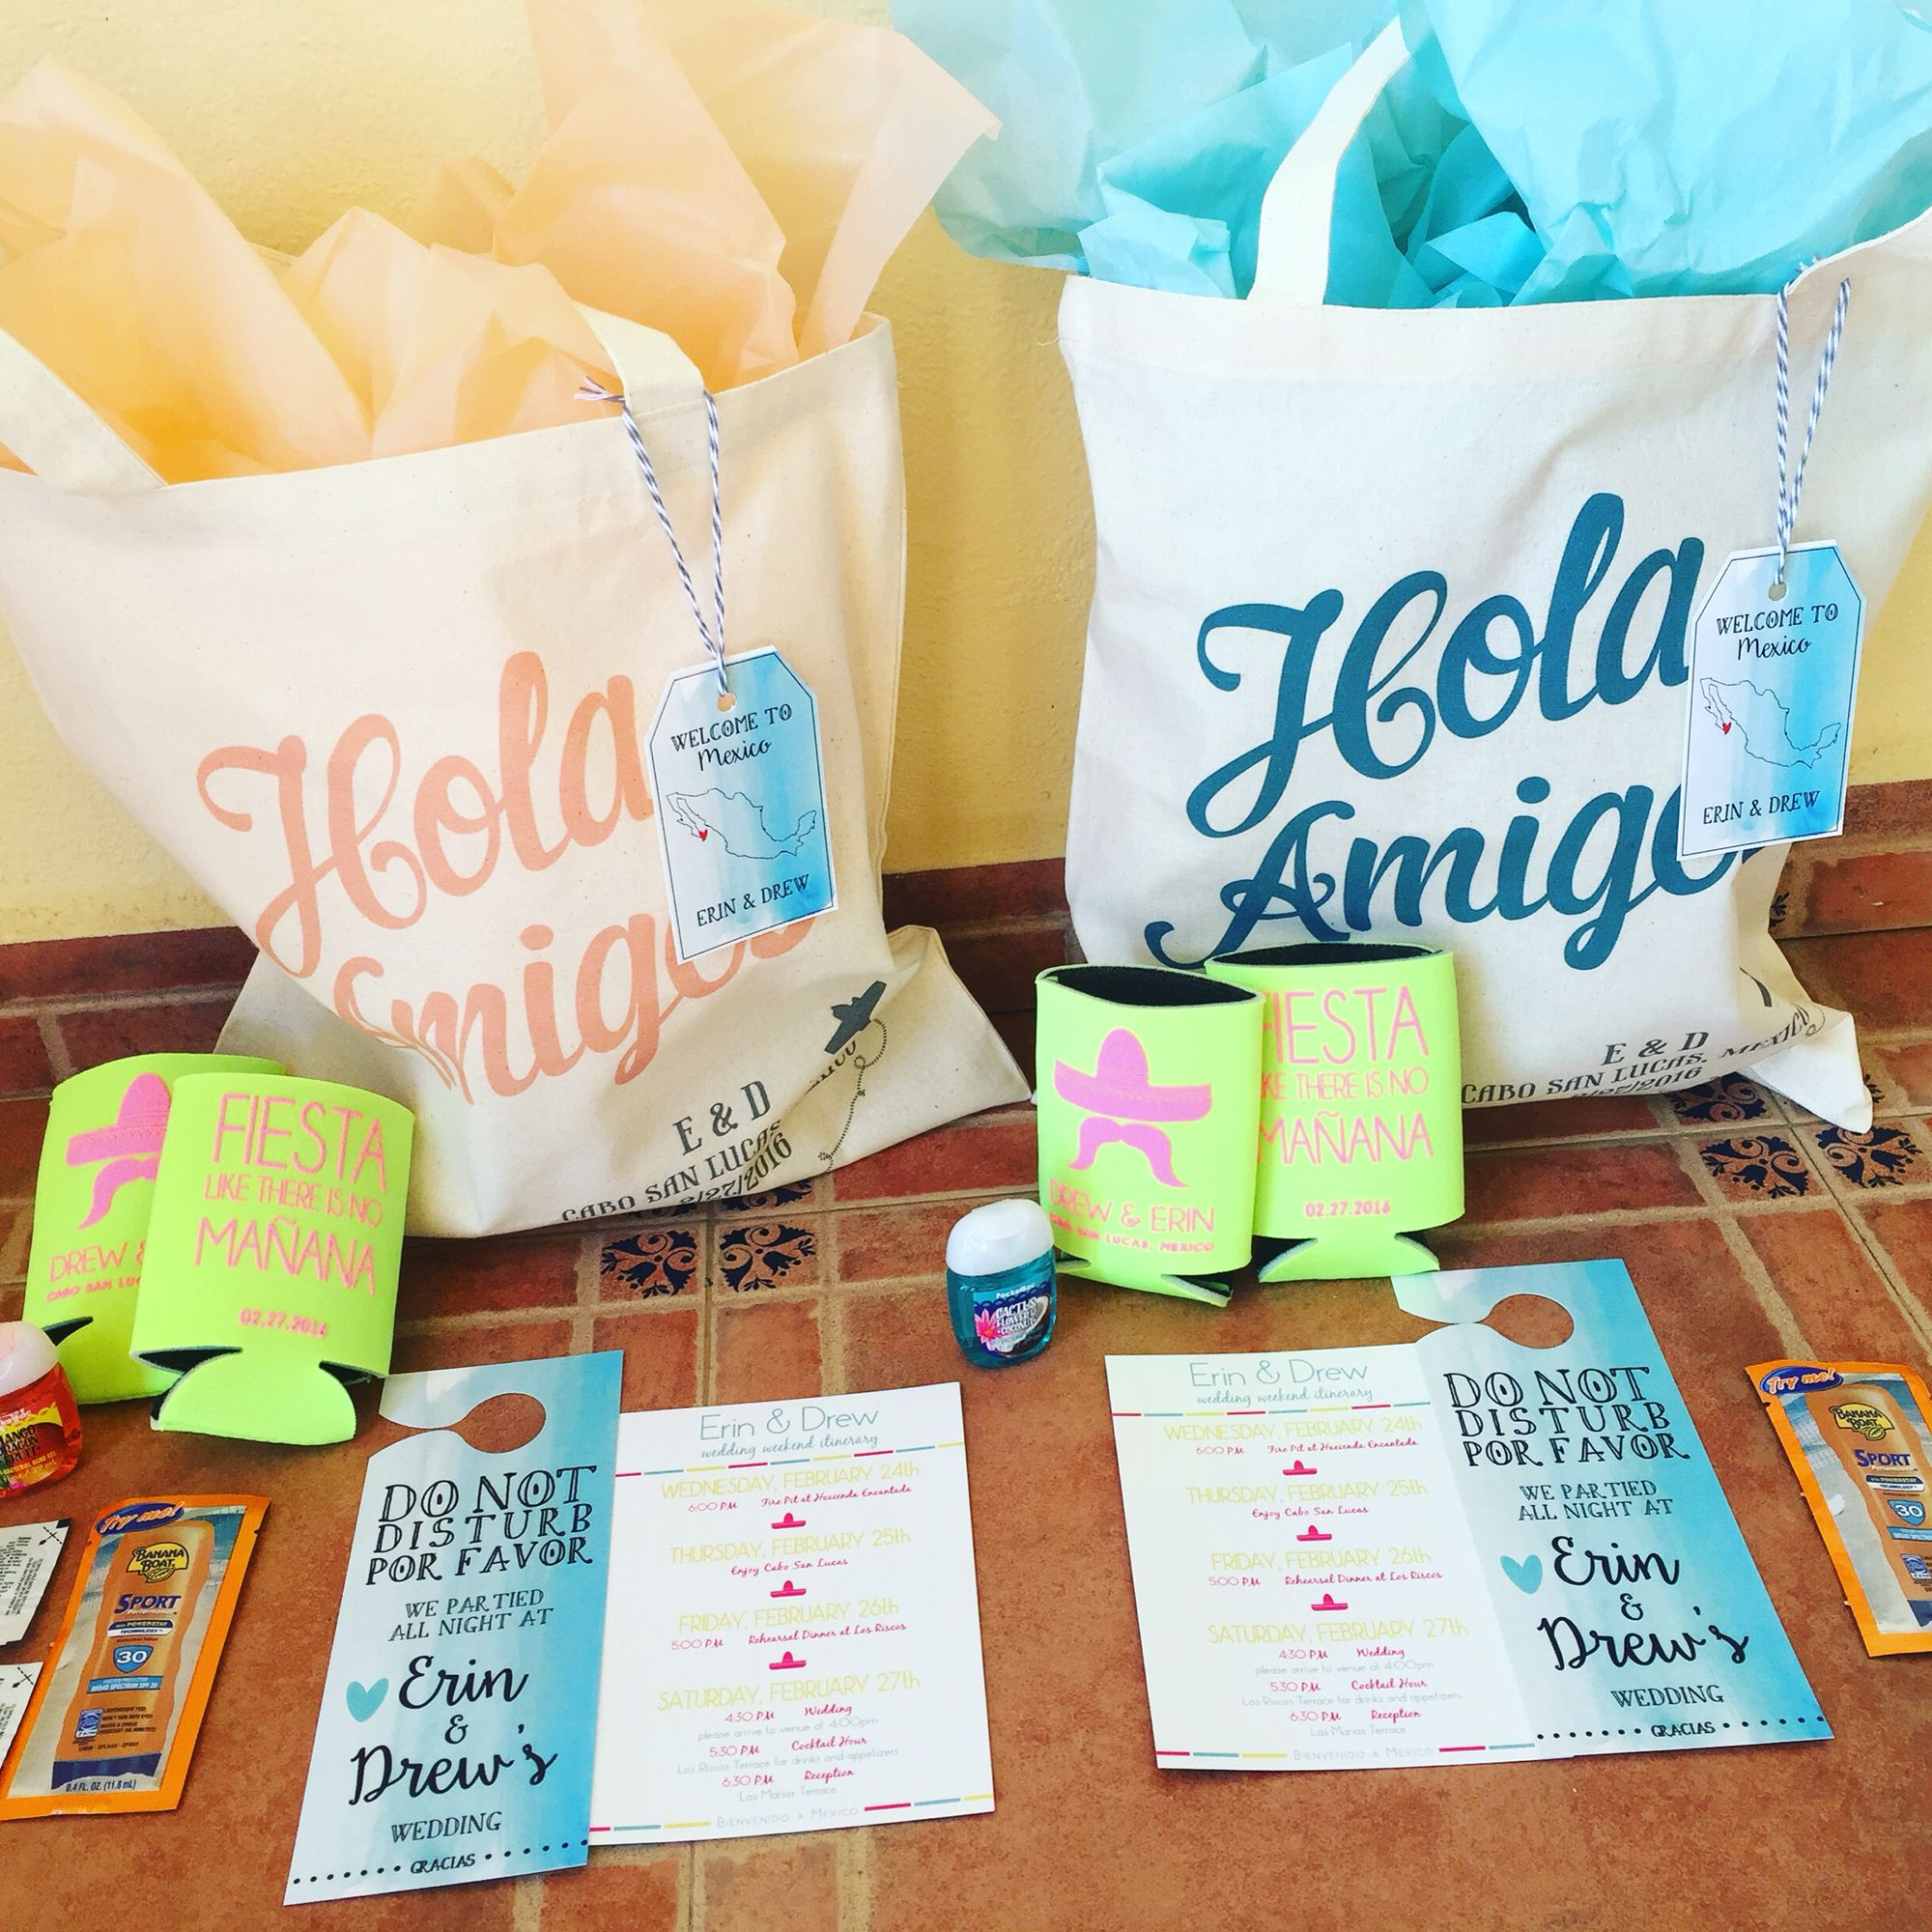 Beach Wedding Gift Bag Ideas: Aloha Welcome Bags For A Destination Wedding In Mexico